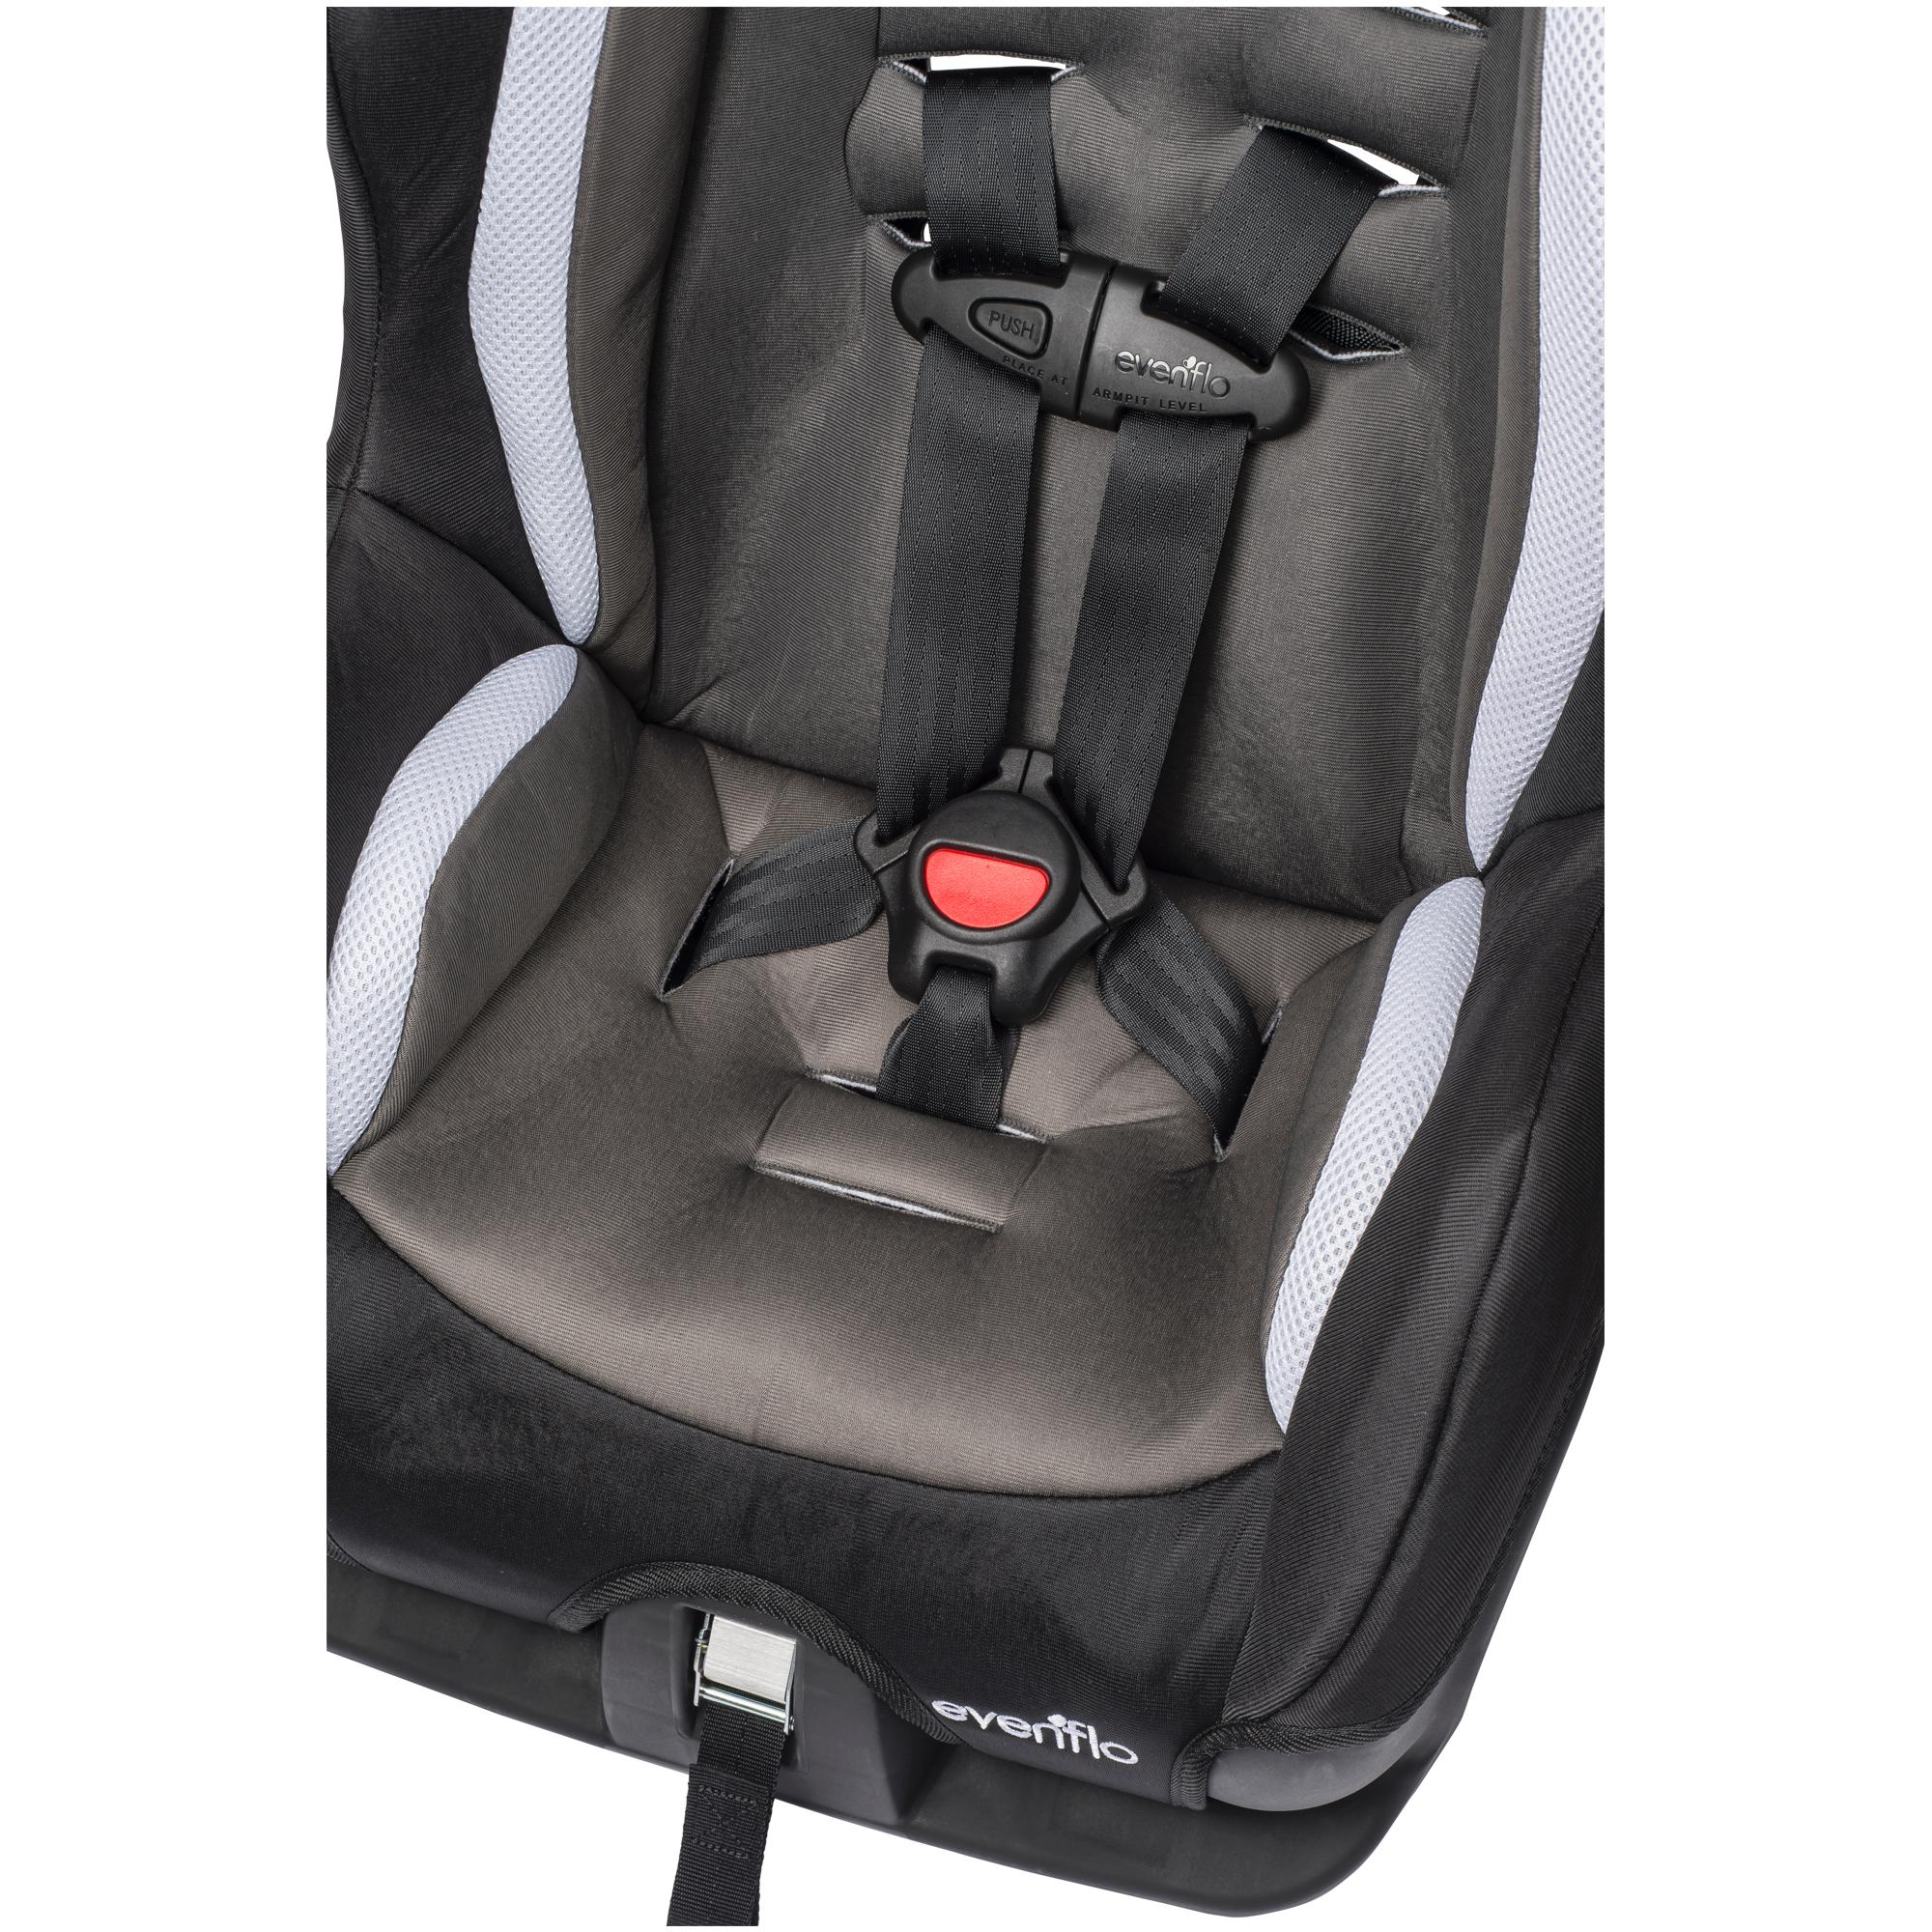 evenflo tribute sport convertible car seat gunther autos post. Black Bedroom Furniture Sets. Home Design Ideas